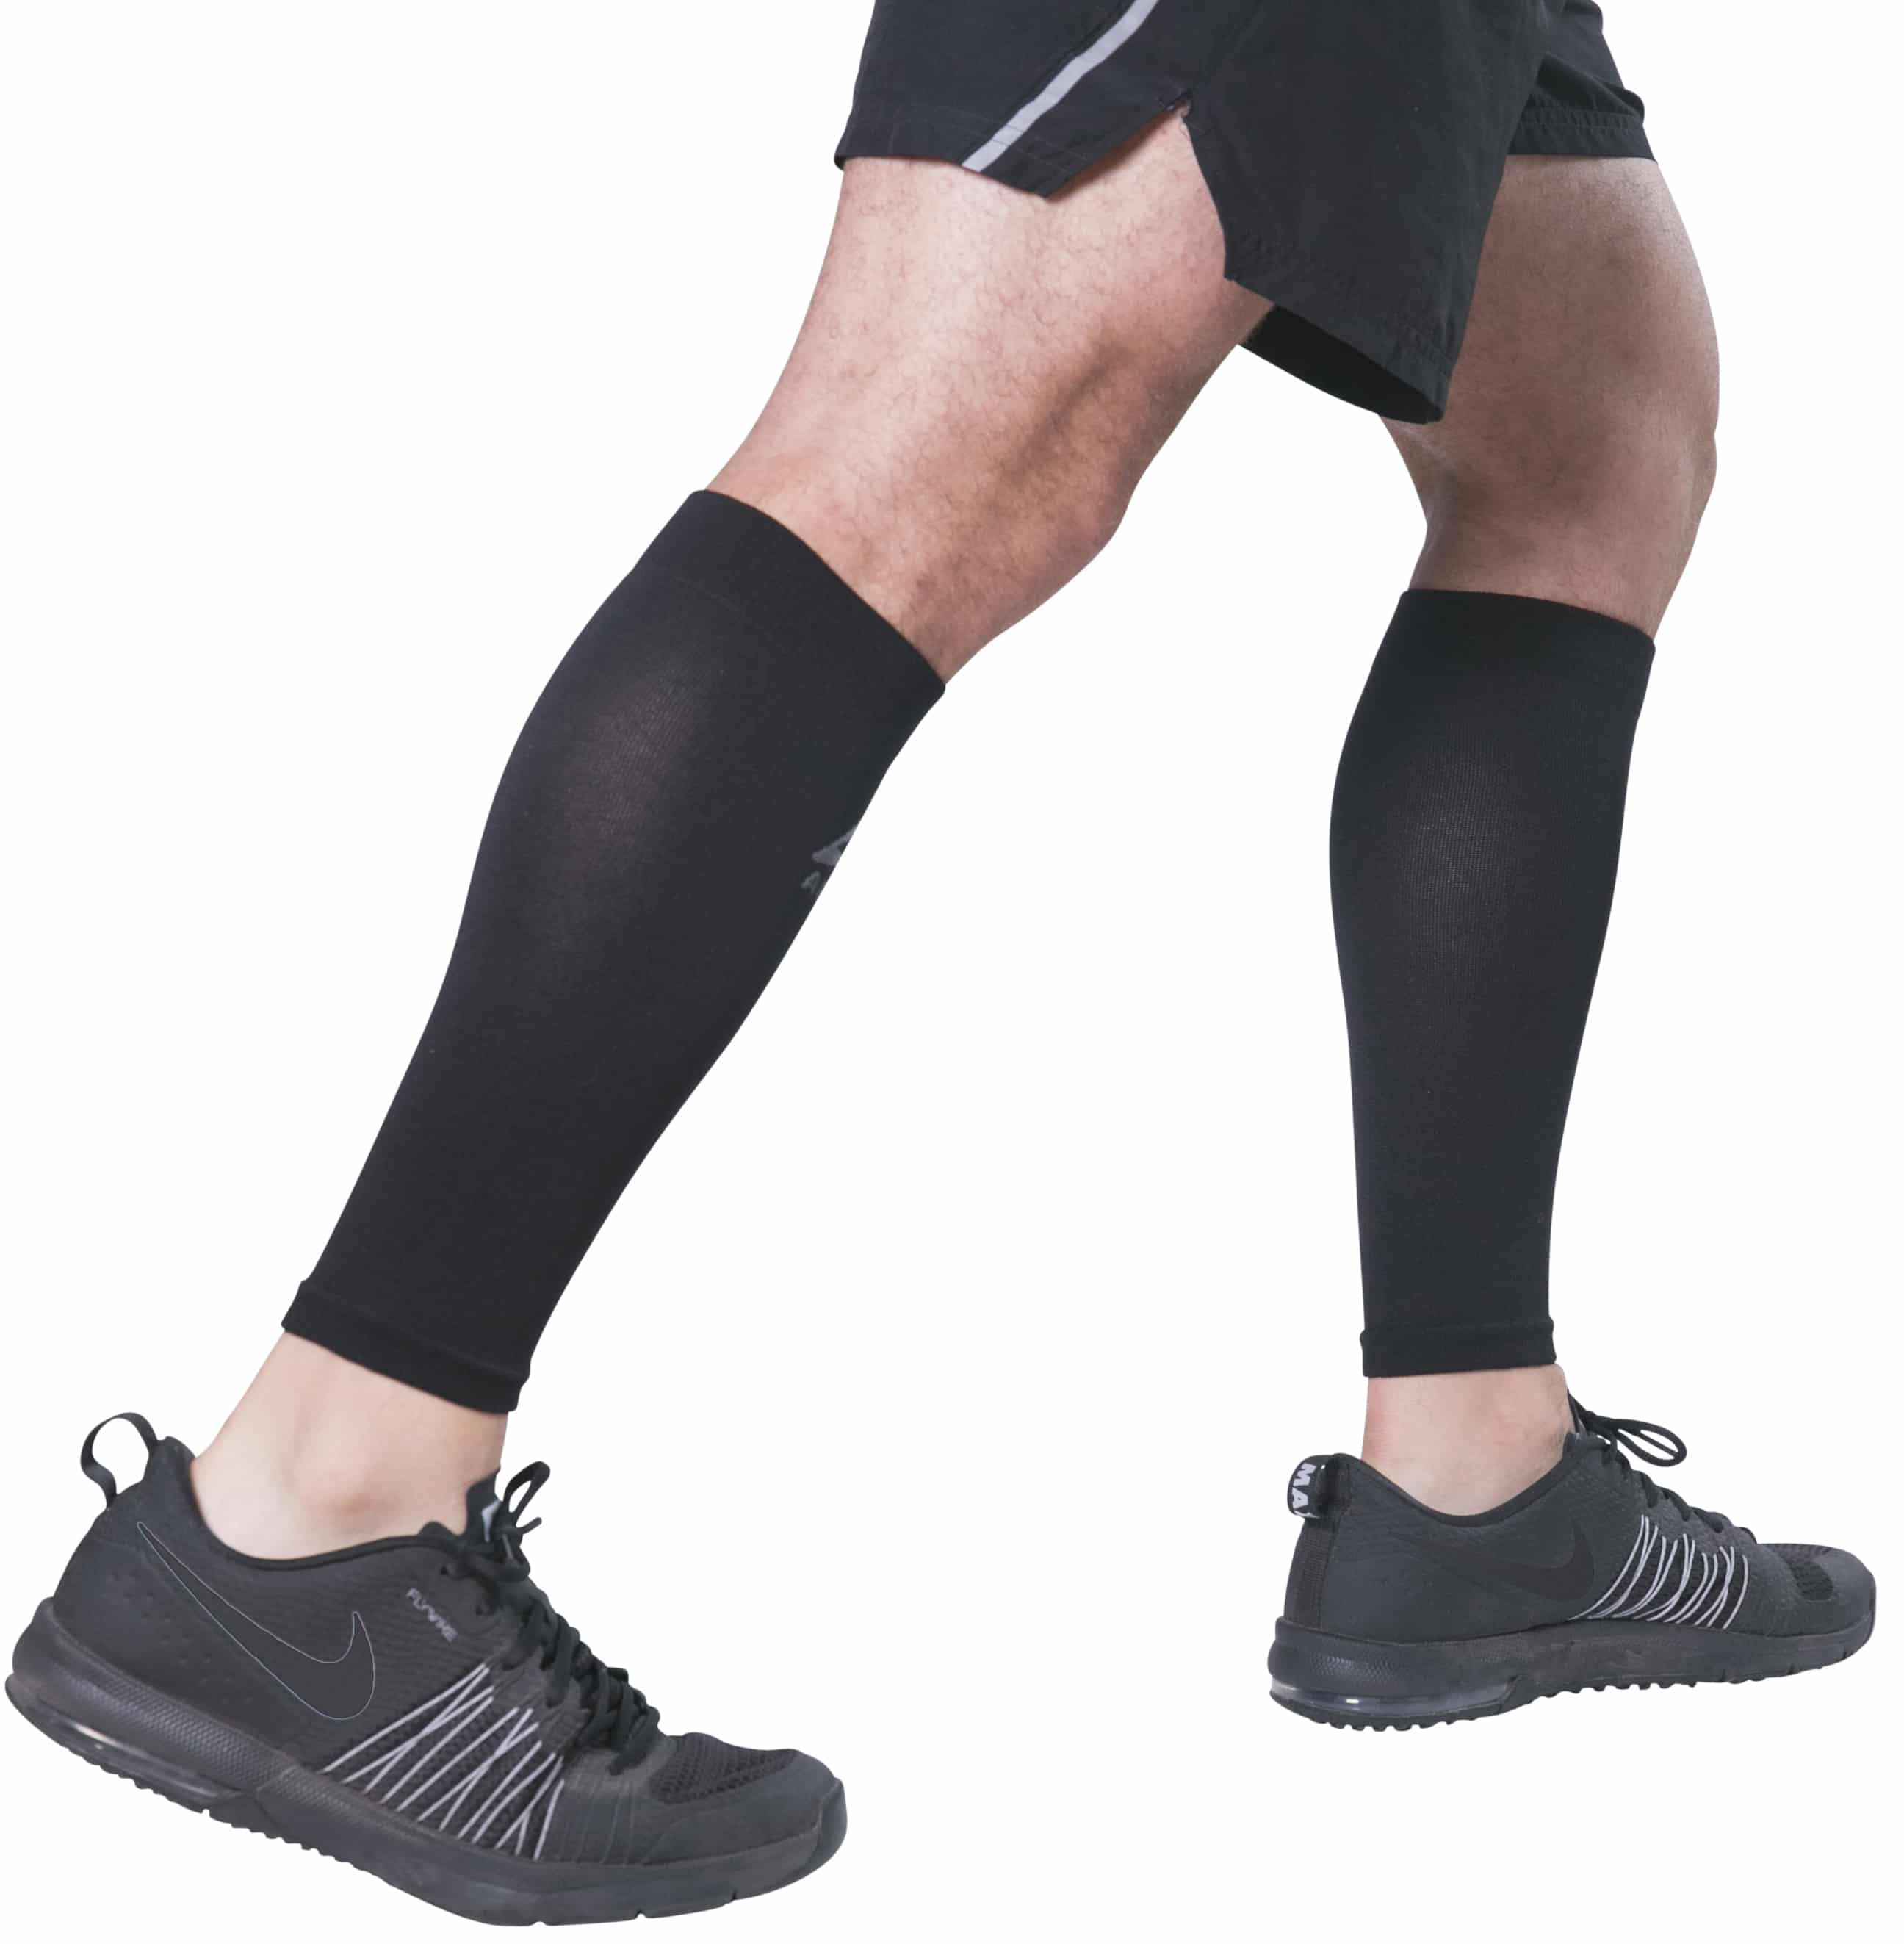 2 CALVES COMPRESSION SLEEVES BY AGON